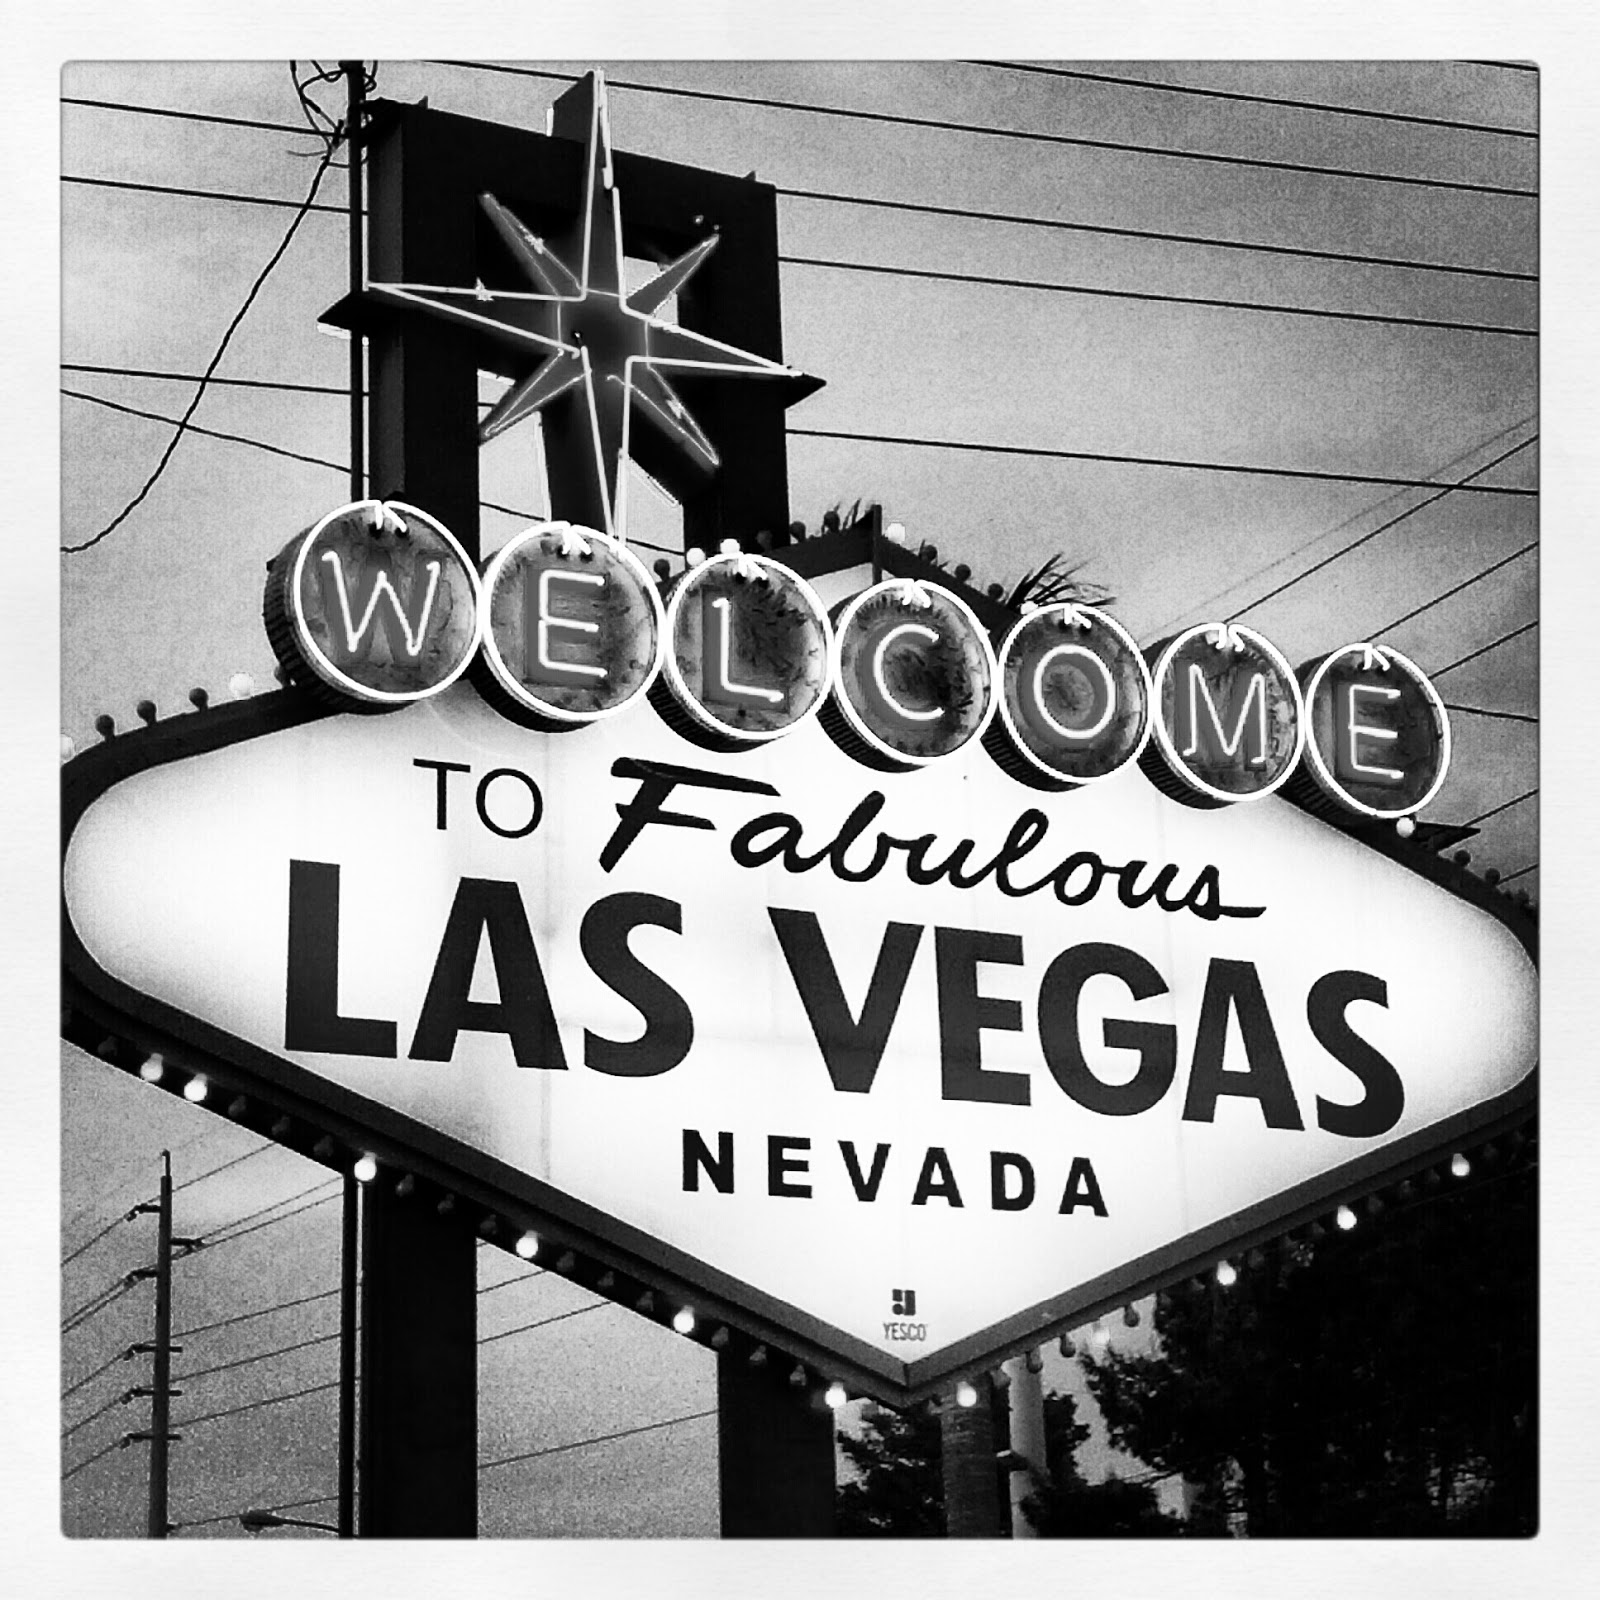 Viva Las Vegas - Black Widow Style | blackwidowgolf